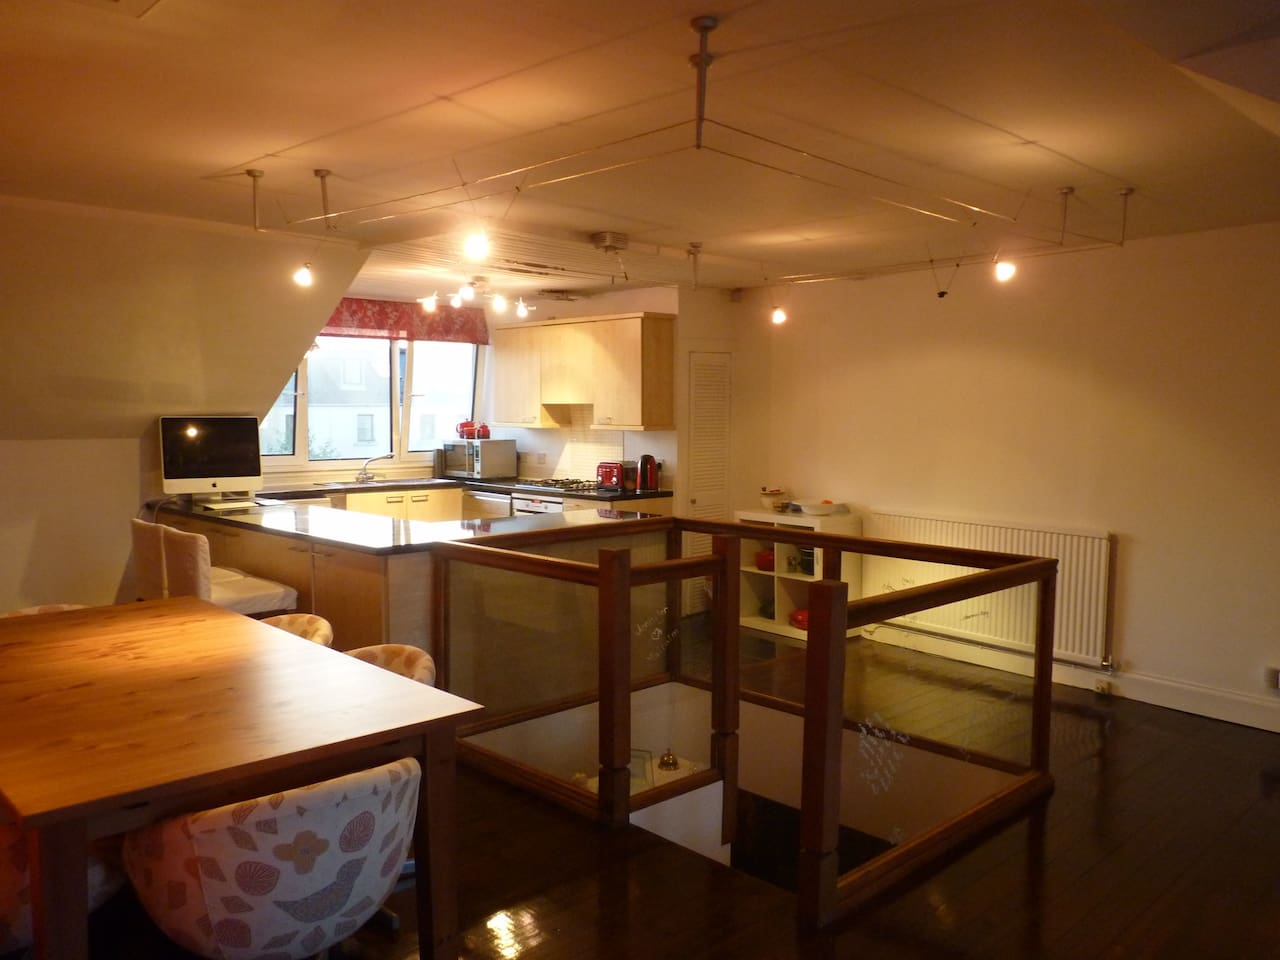 Sociable open plan kitchen and dining areas.